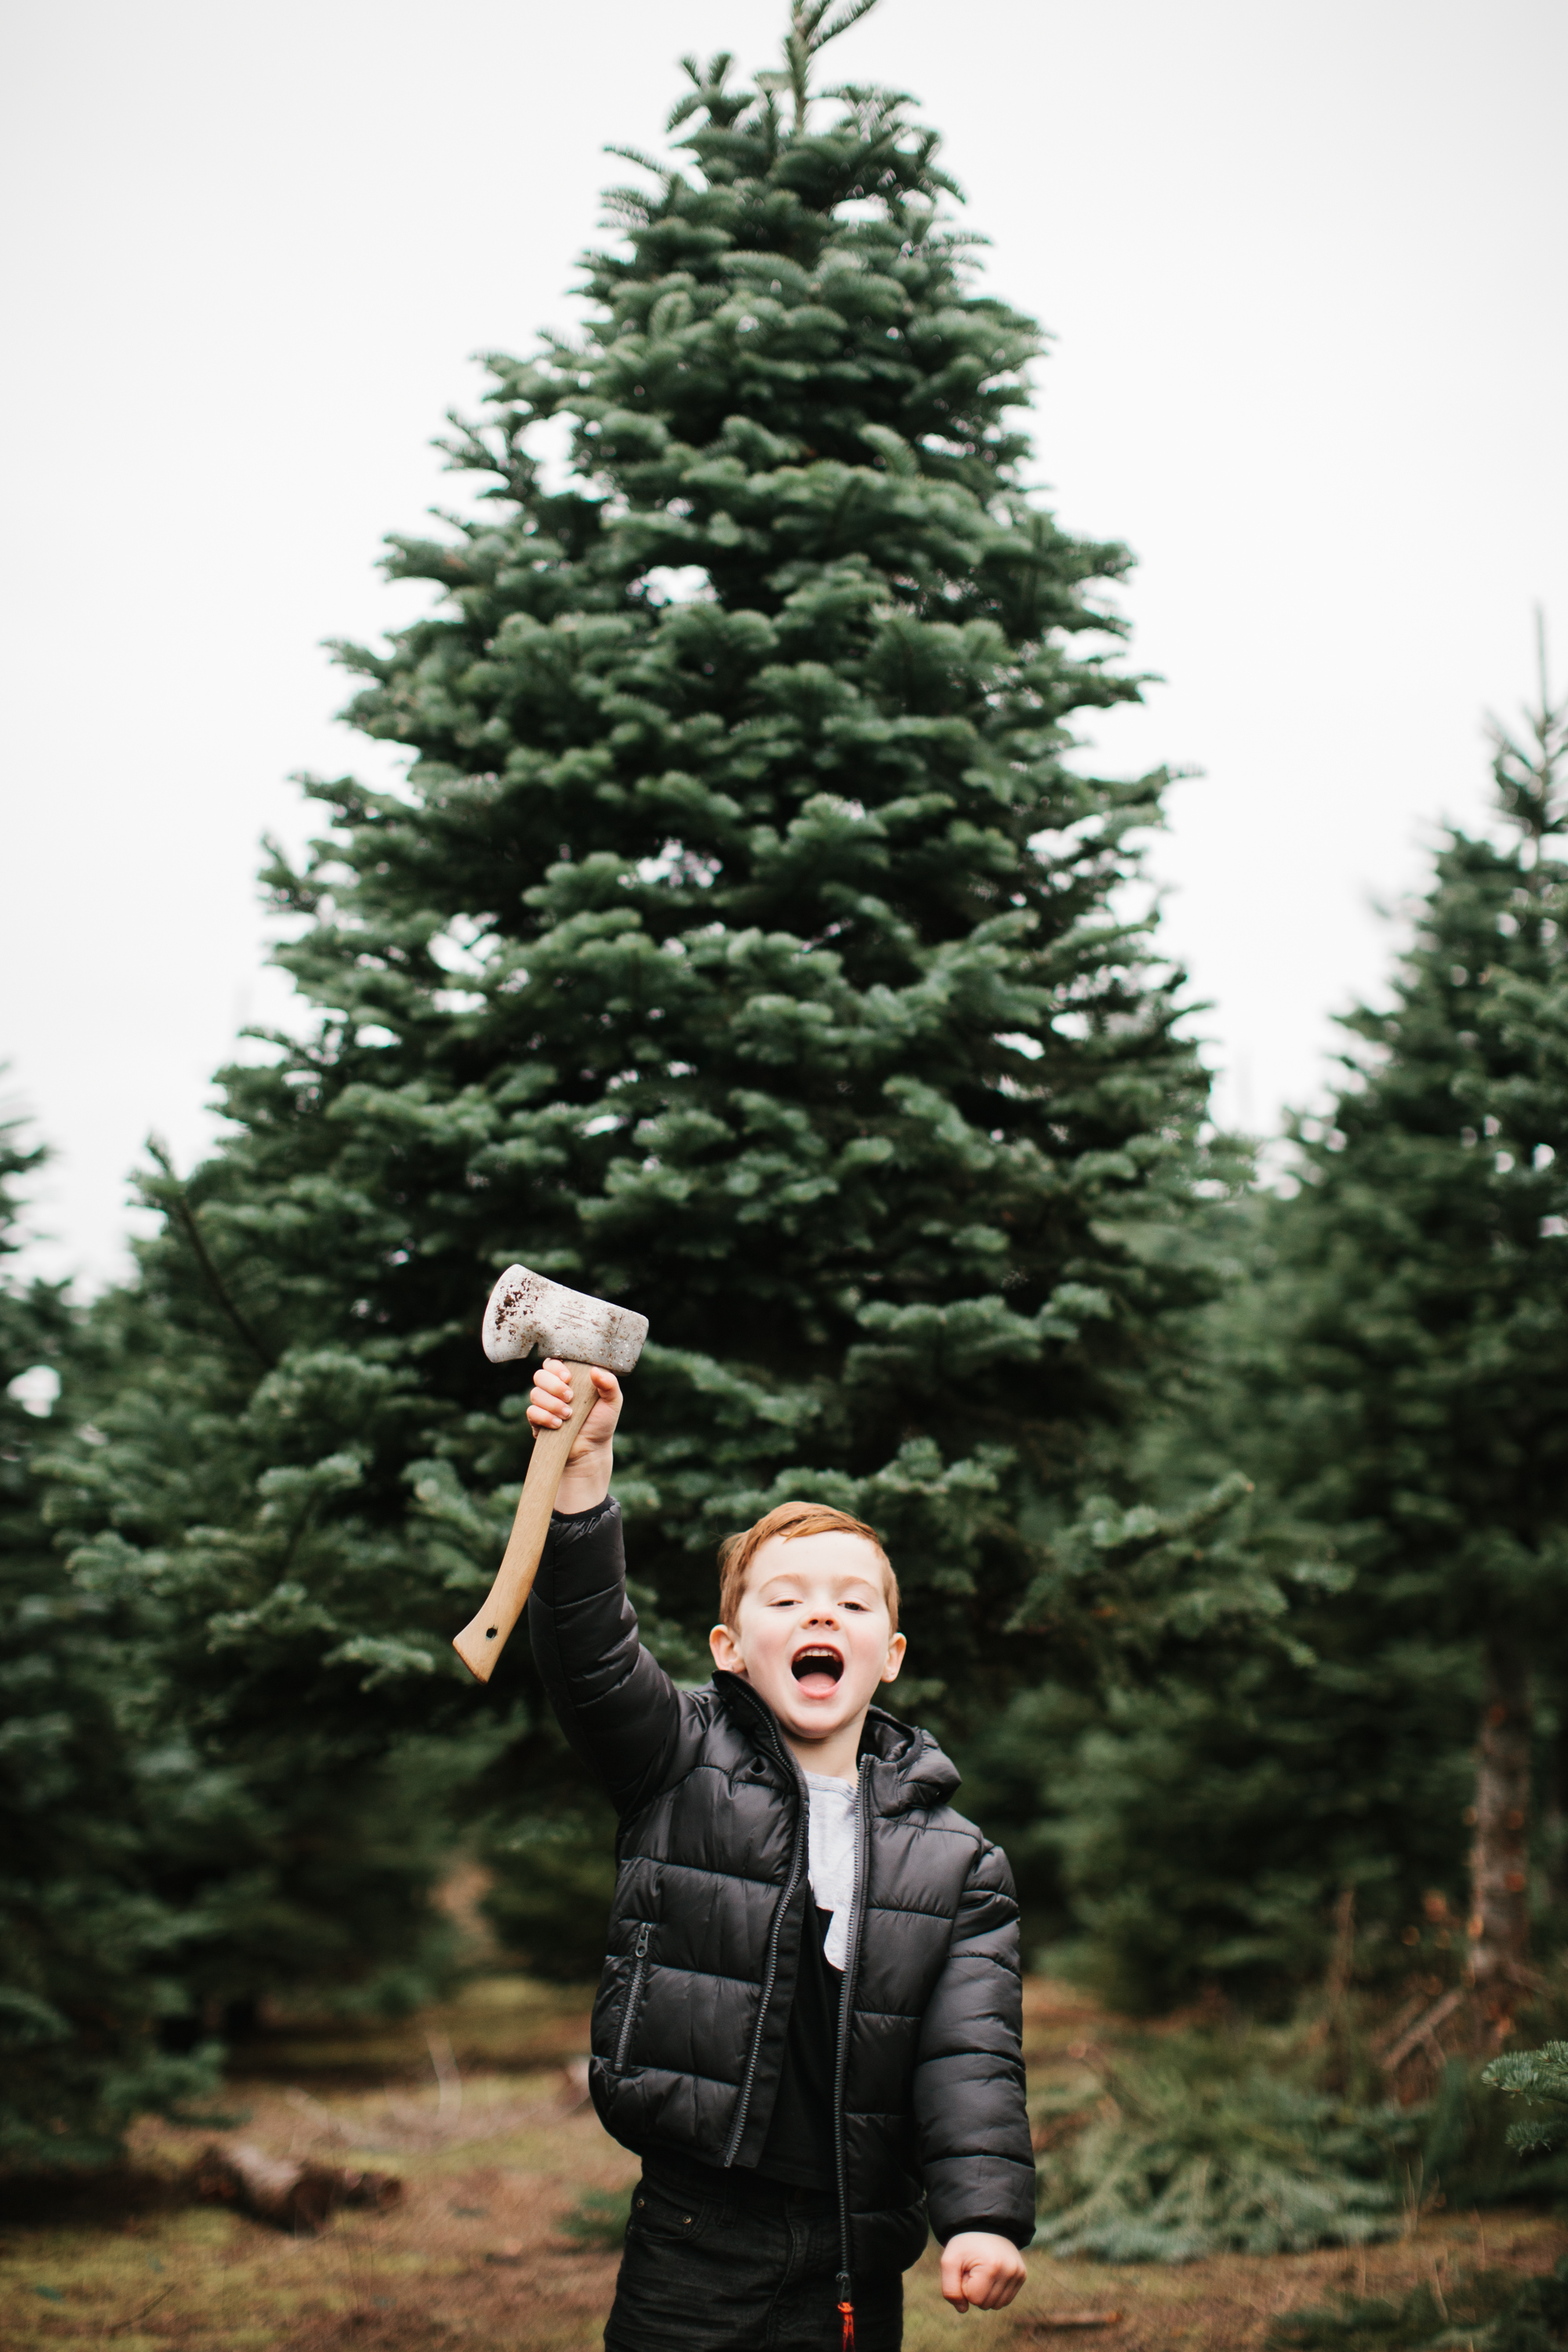 young boy holding up axe